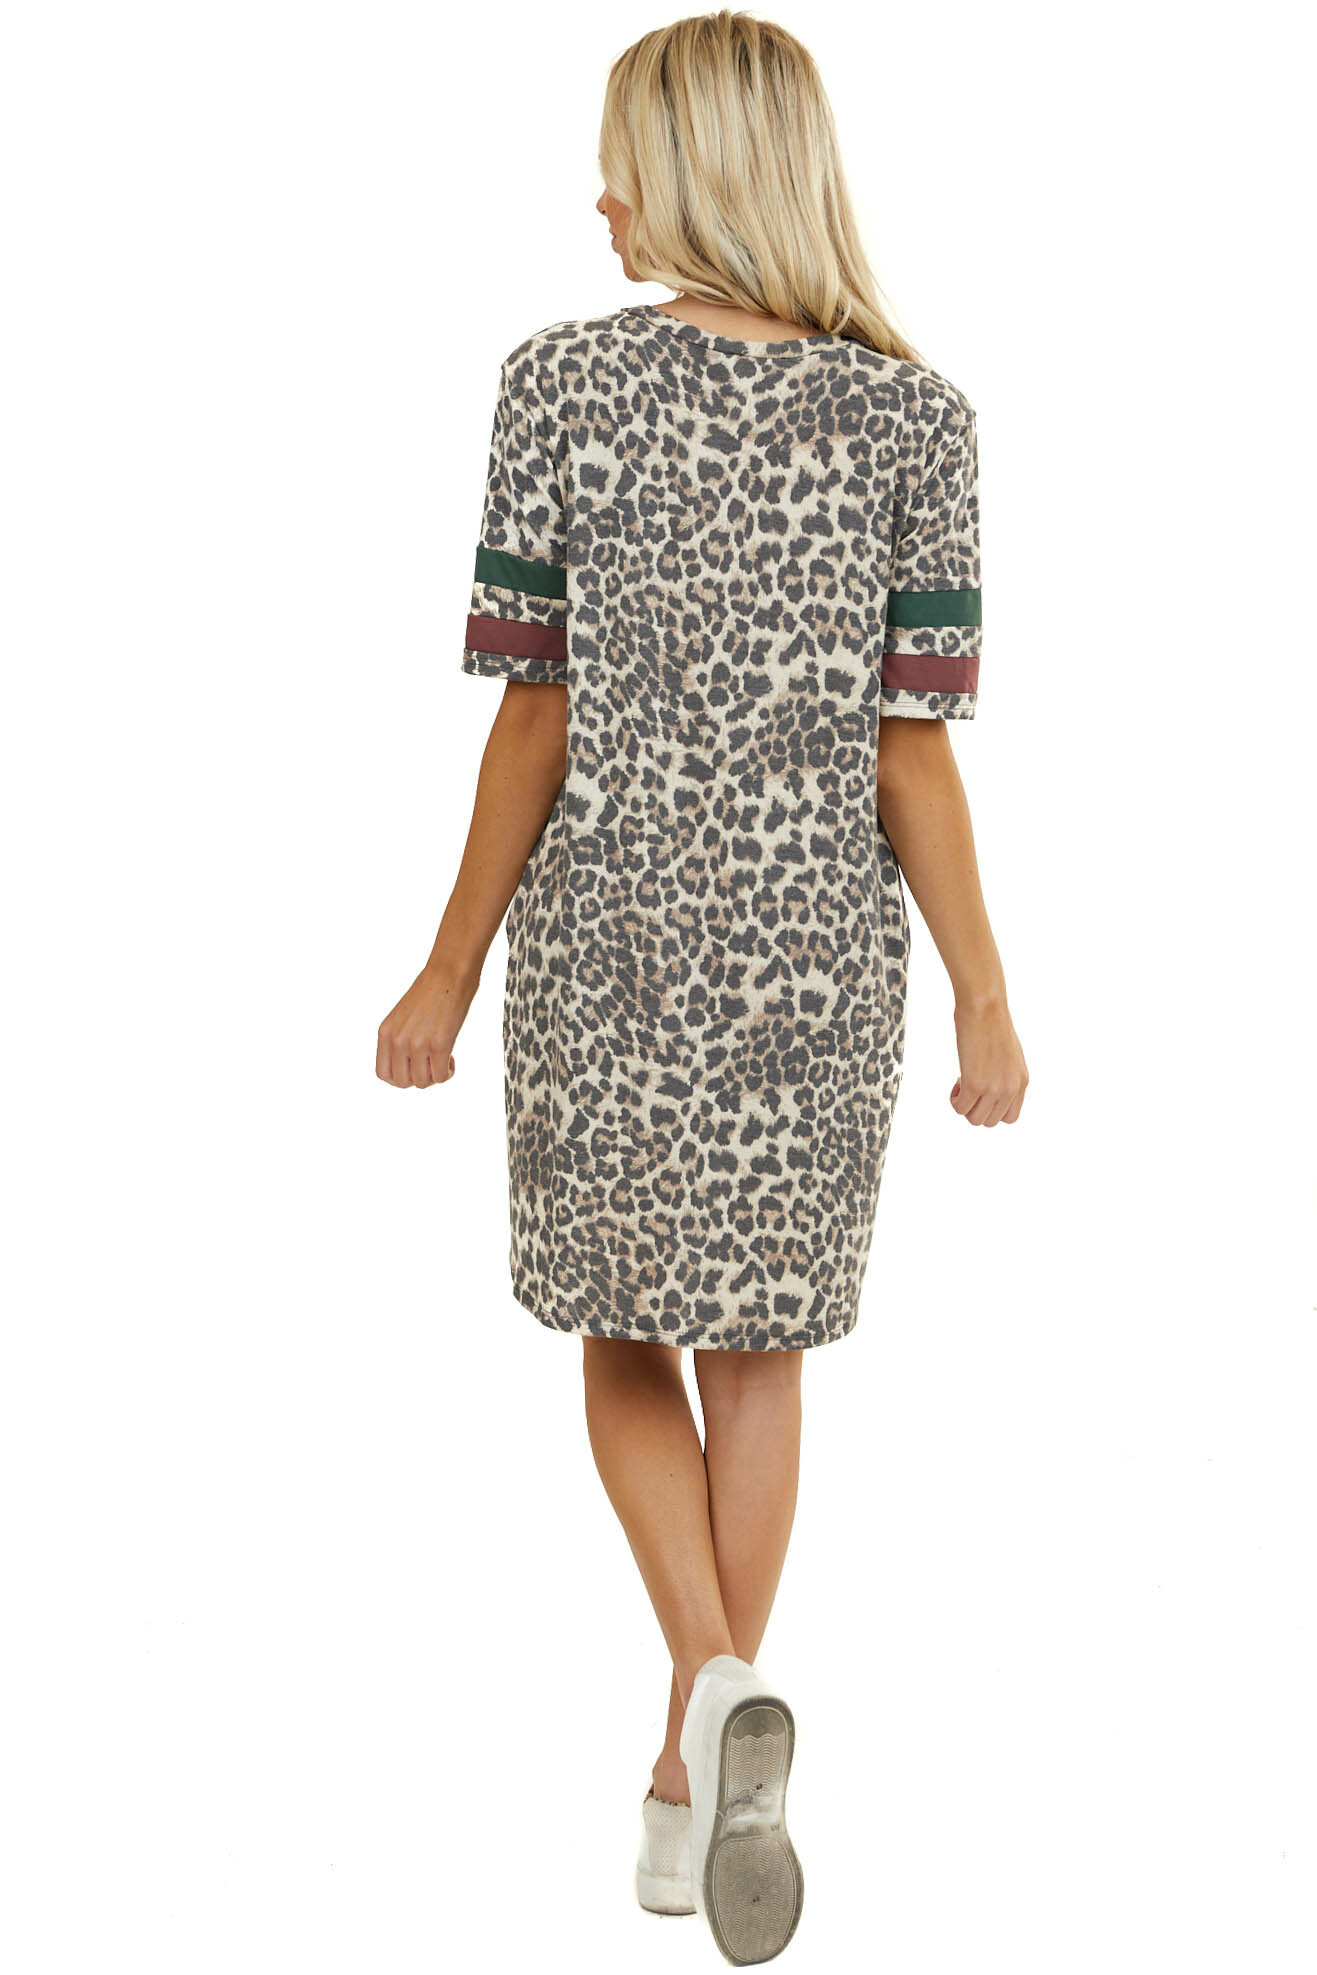 Beige Leopard Print Dress with Contrast Sleeve and Pockets